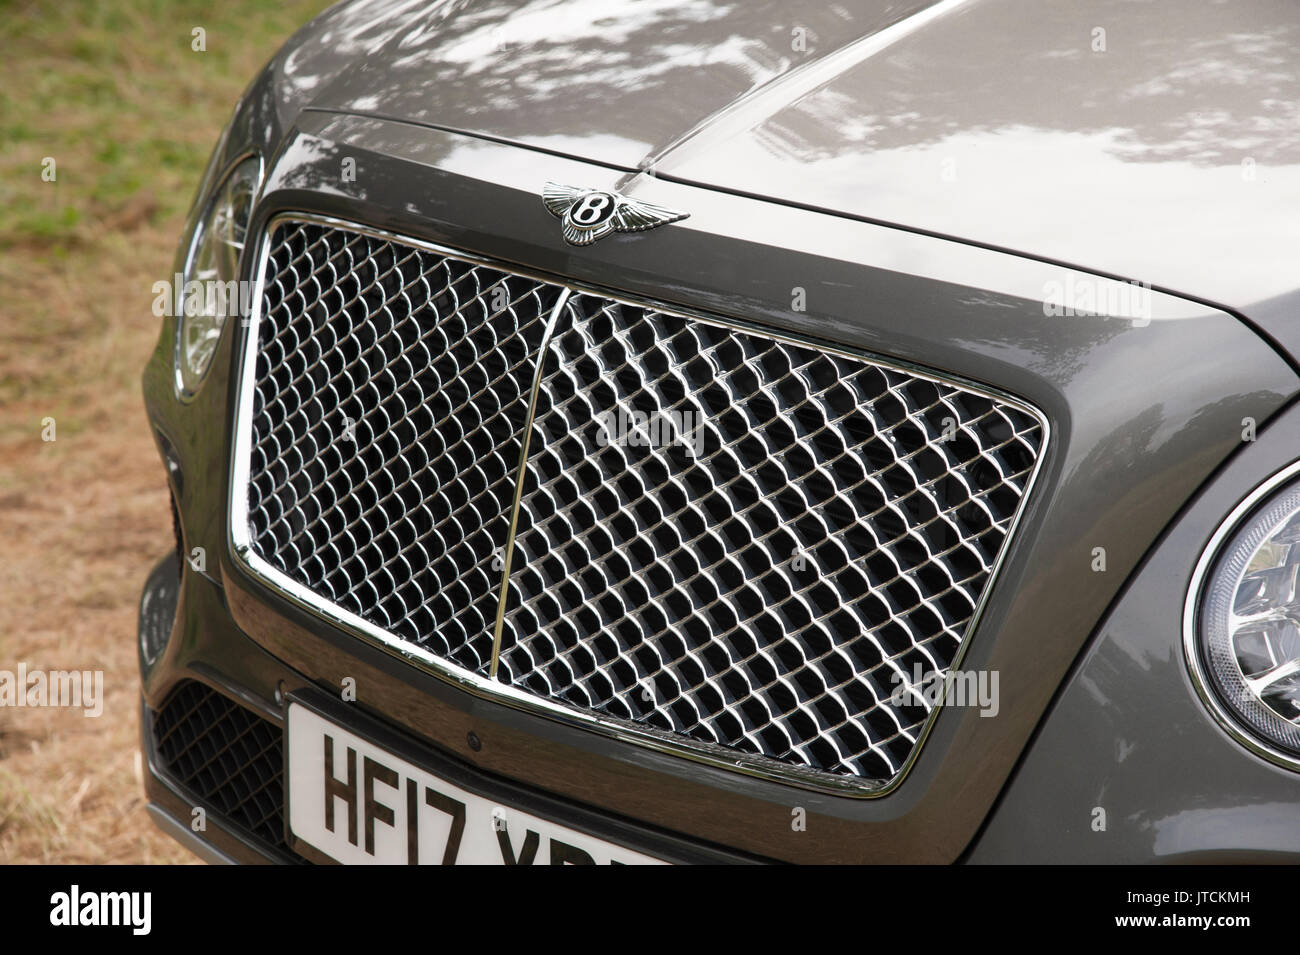 2017 Bentley Bentayga Kühlergrill Stockbild